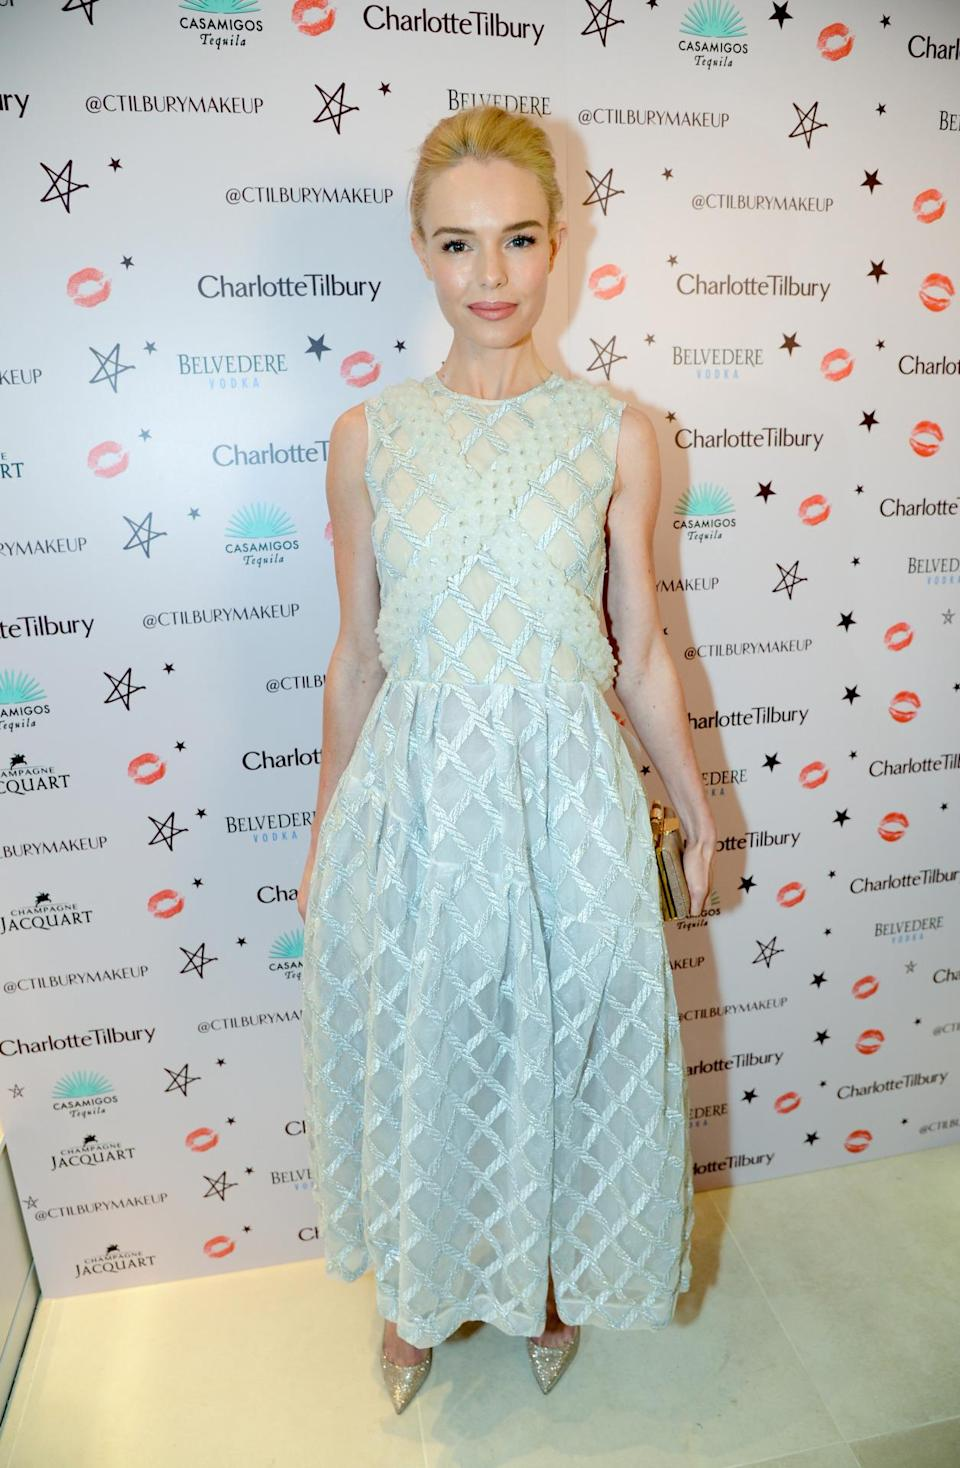 Kate Bosworth looked beautiful in a pale blue Simone Rocha dress, which featured a corseted back and crisscrossed detailing. [Photo: Rex]